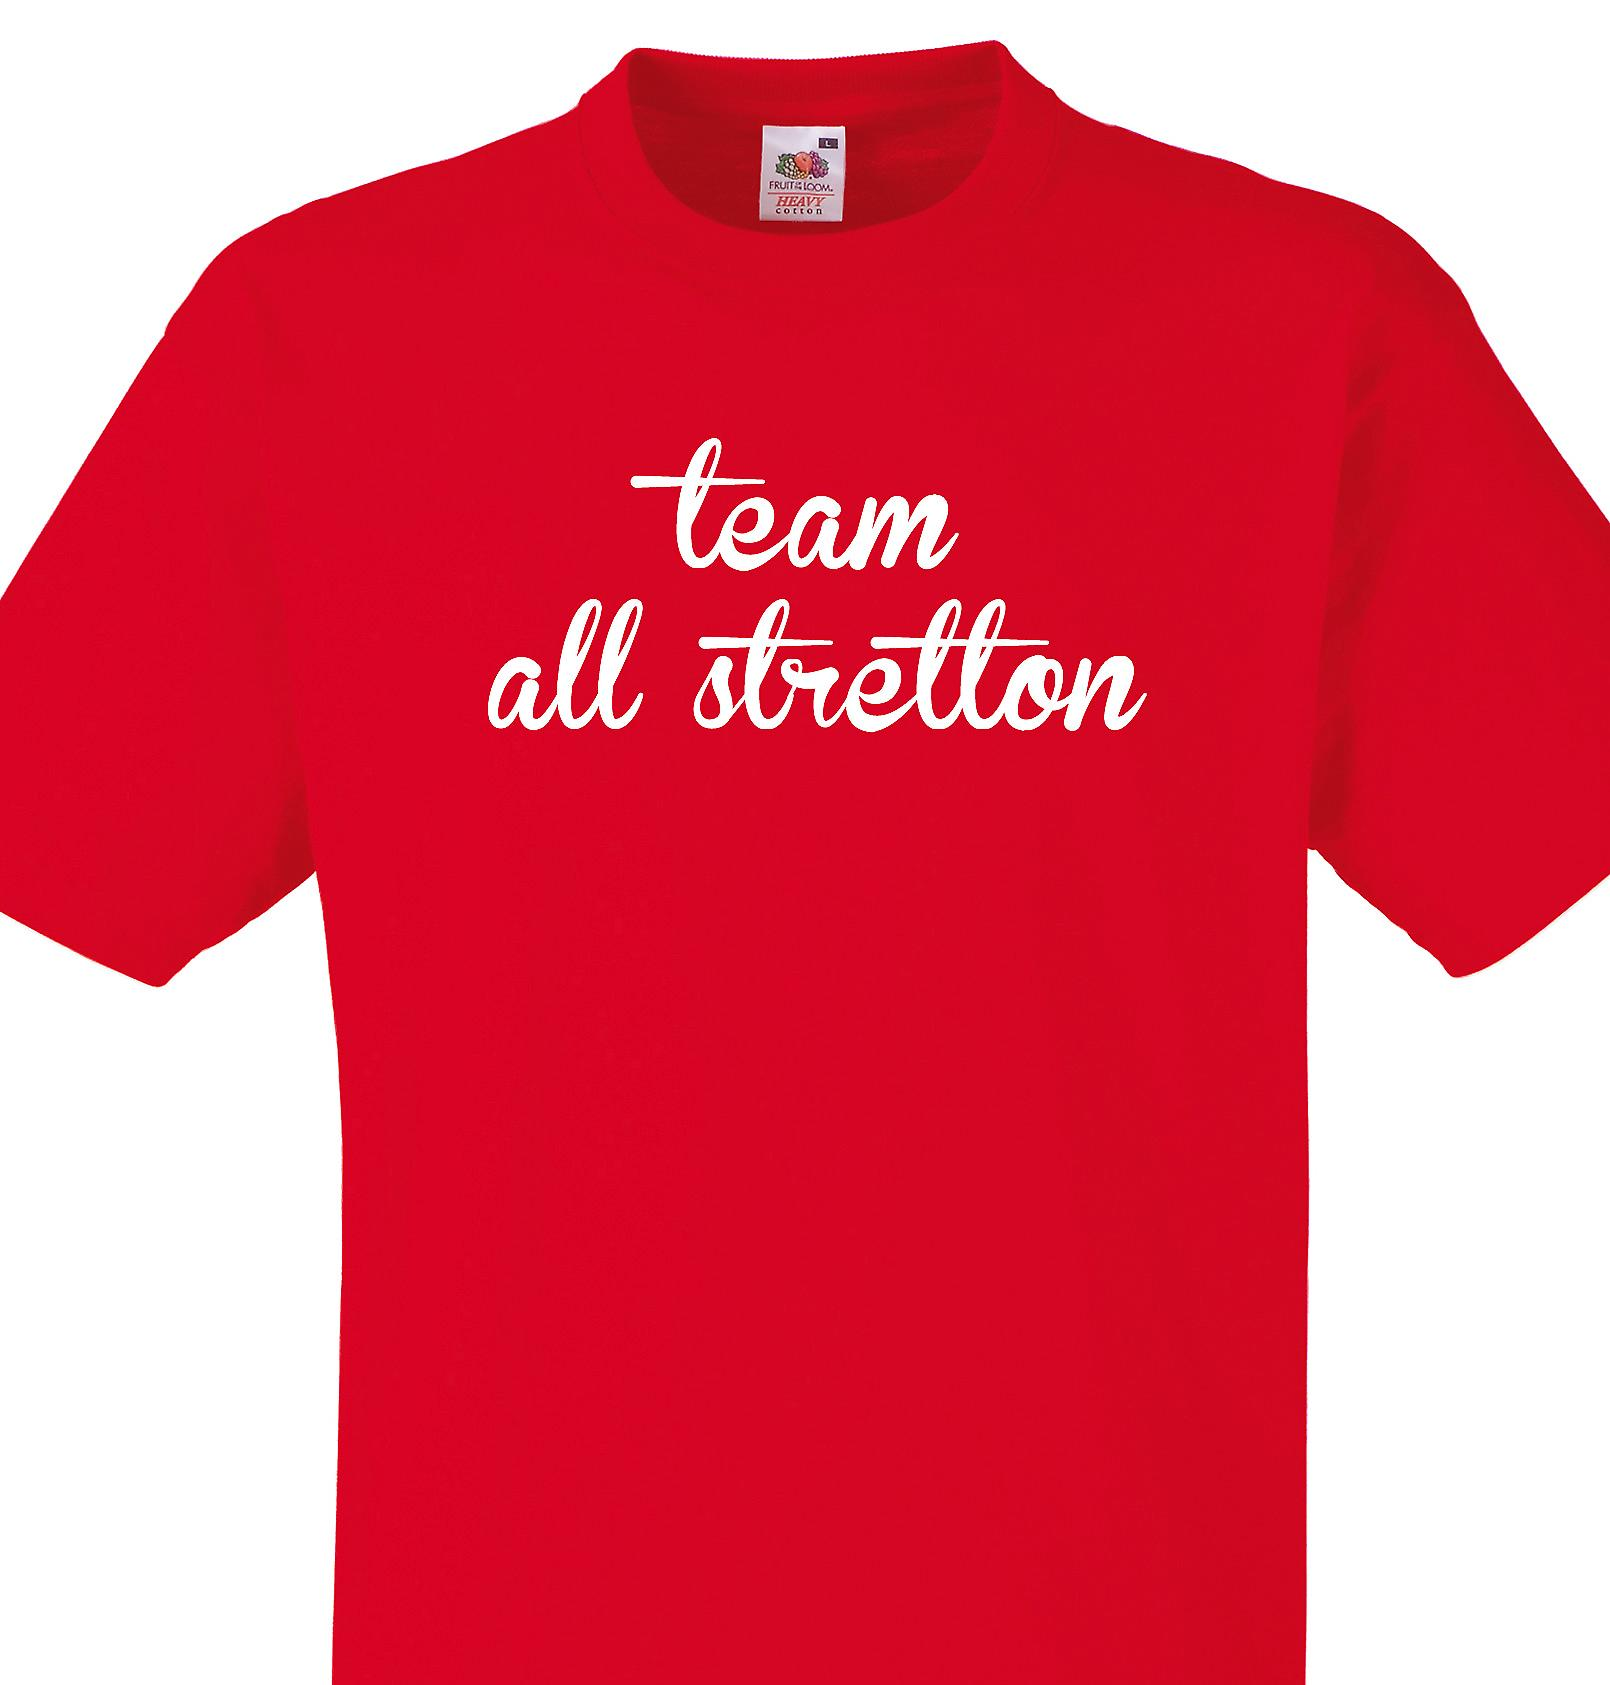 Team All stretton Red T shirt